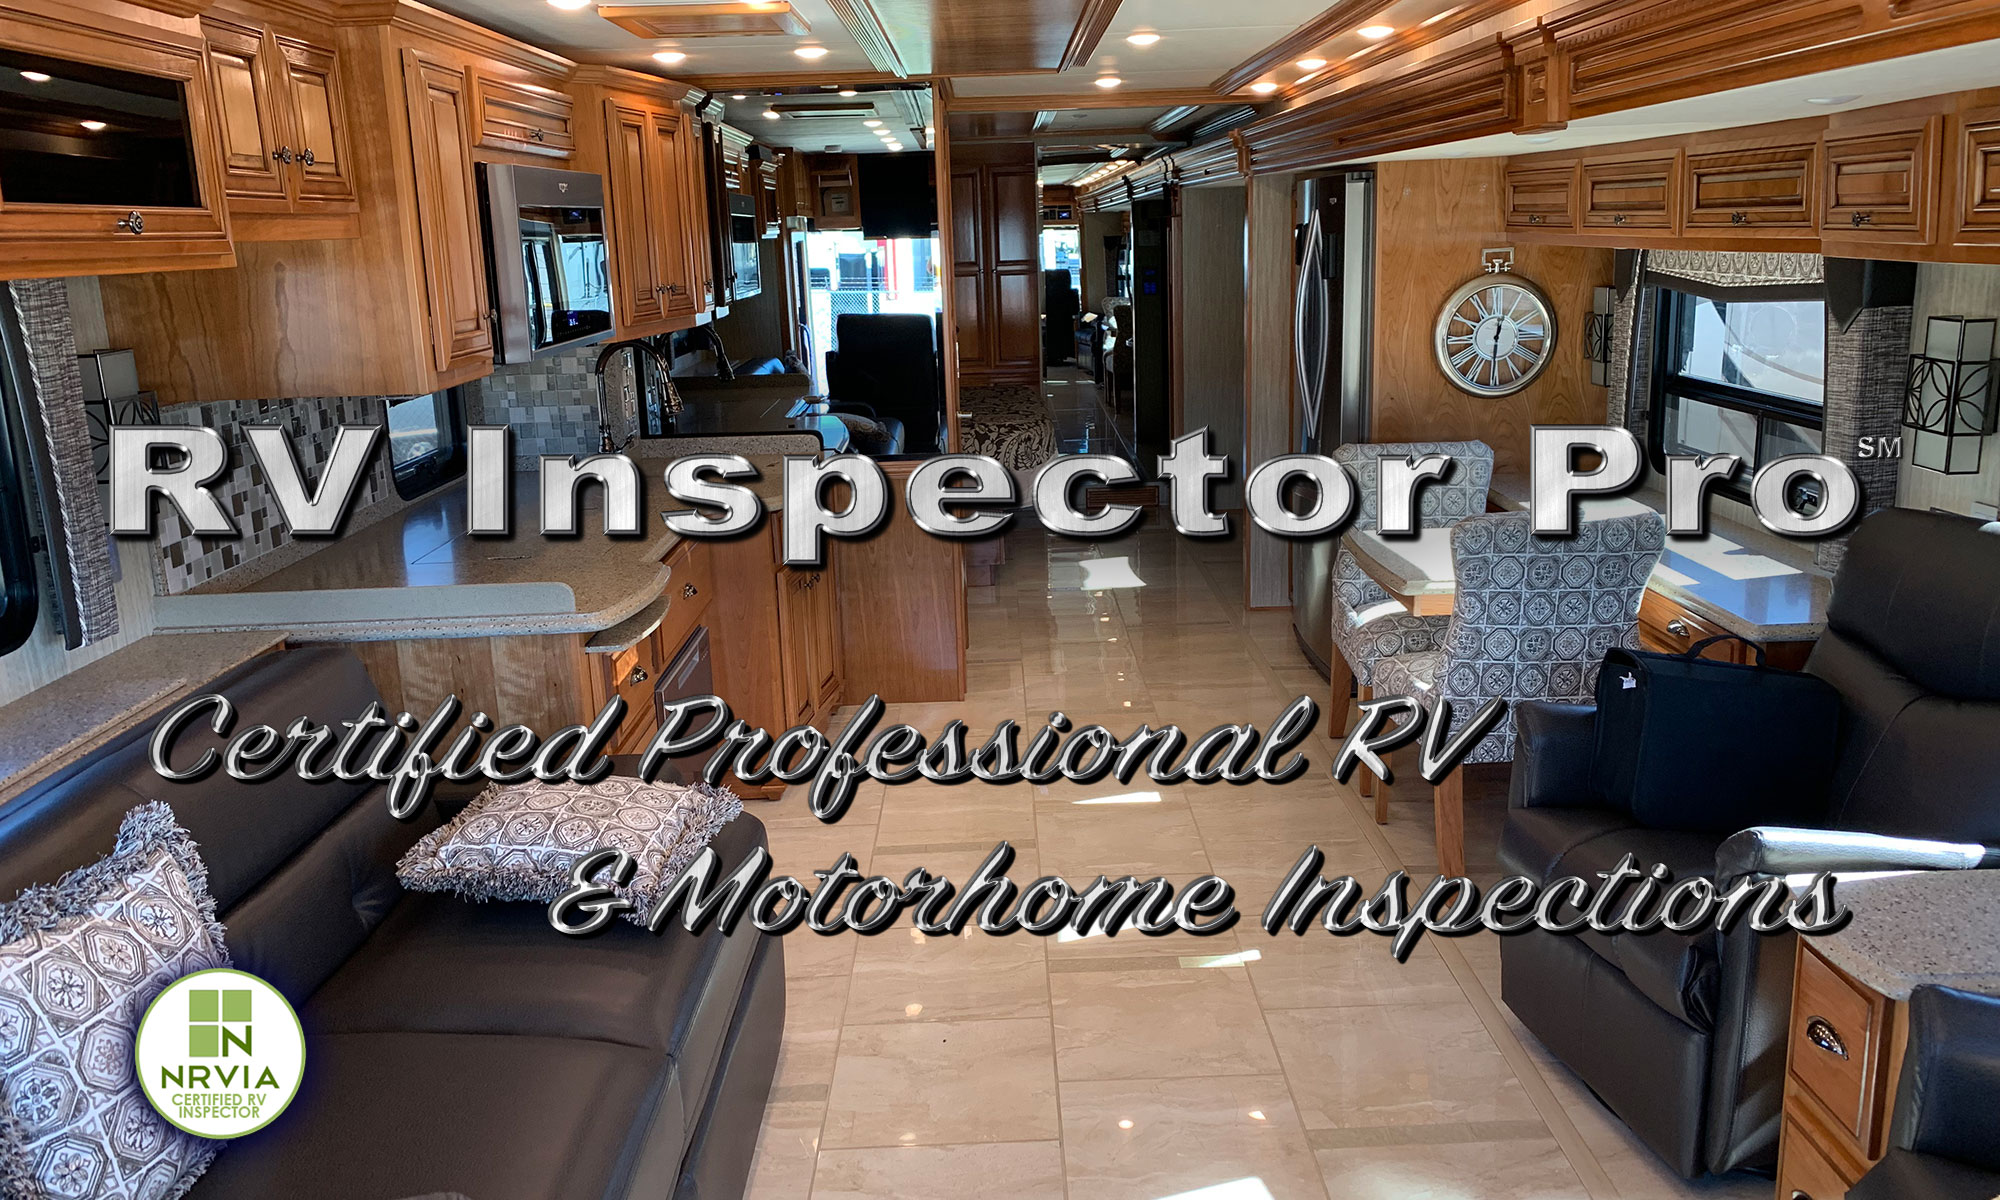 Motorhome Interior with RV Inspector Pro Logo